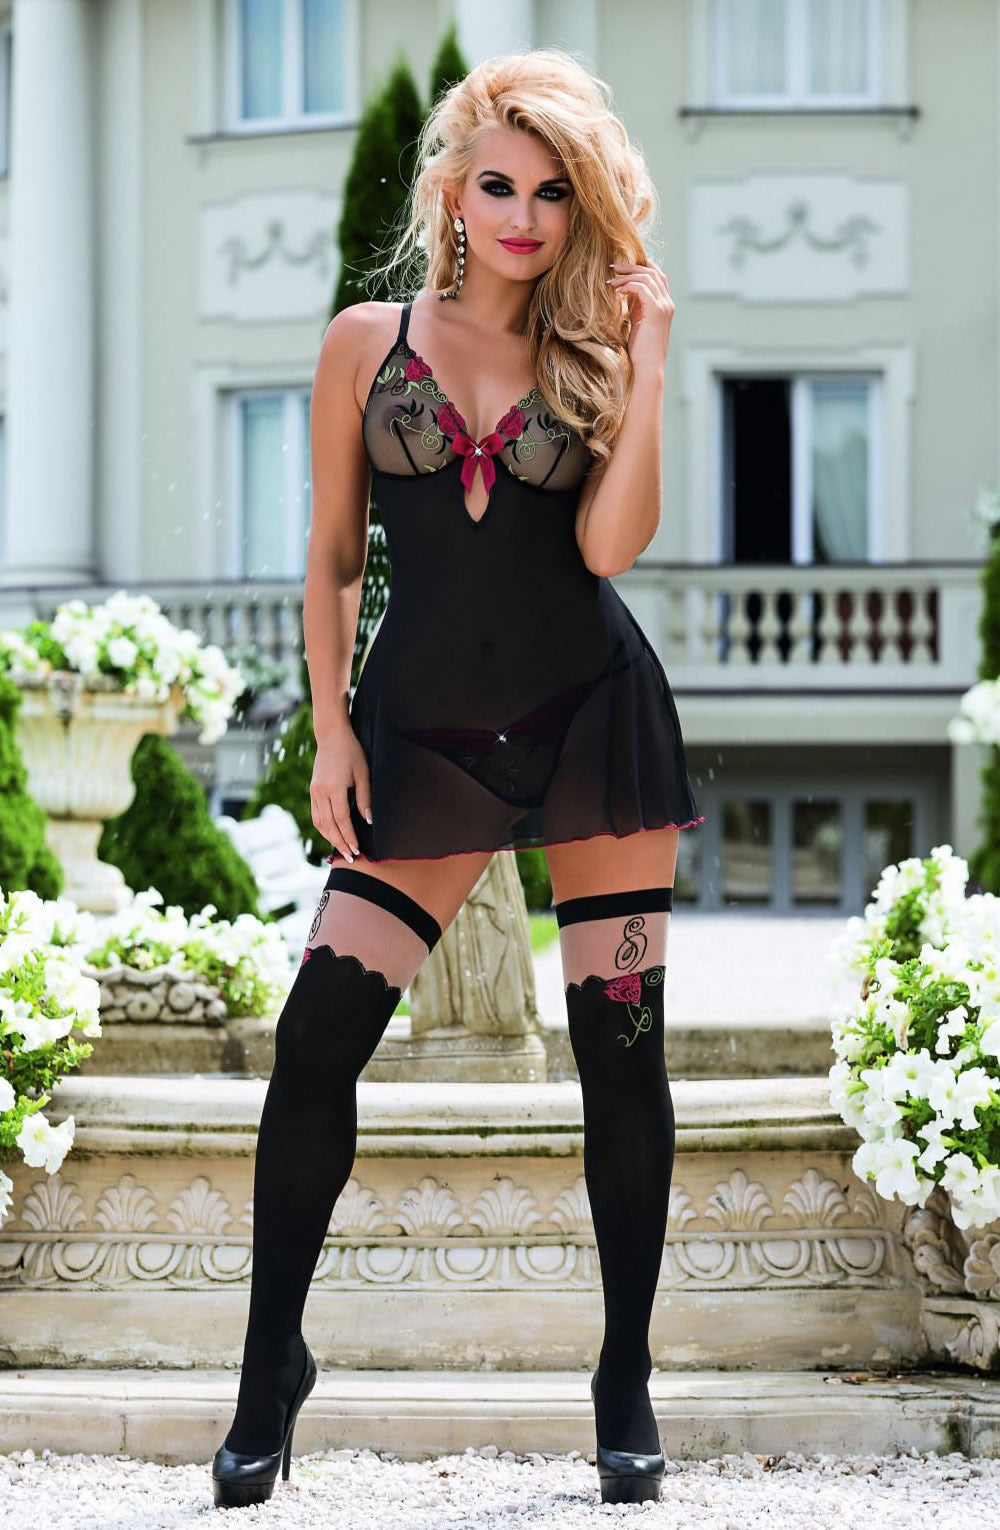 Roza Rufina Chemise Black  Bra Sets, Chemises, Honeymoon, Lingerie Sets, NEWLY-IMPORTED, Our TOP Valentine's Gifts!, Roza, Valentine, Valentines - So Luxe Lingerie